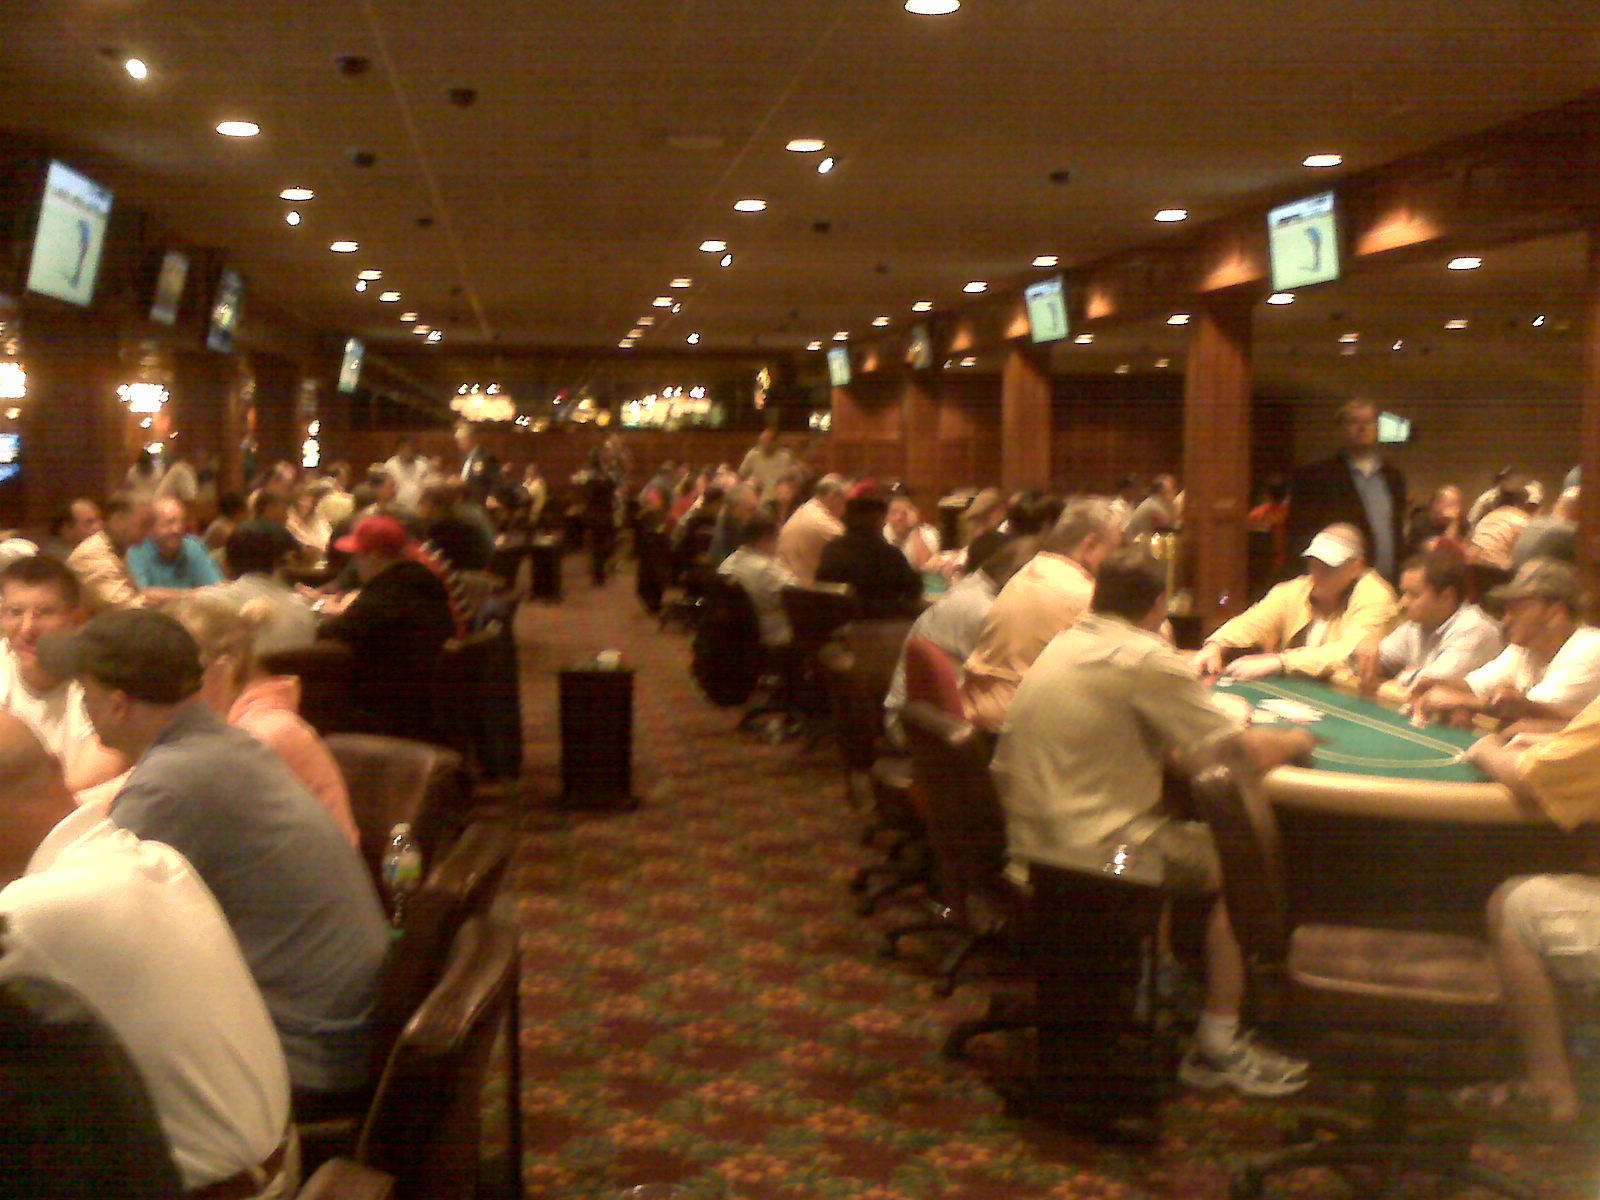 Tucson casino poker tournaments casino ballroom hampton nh